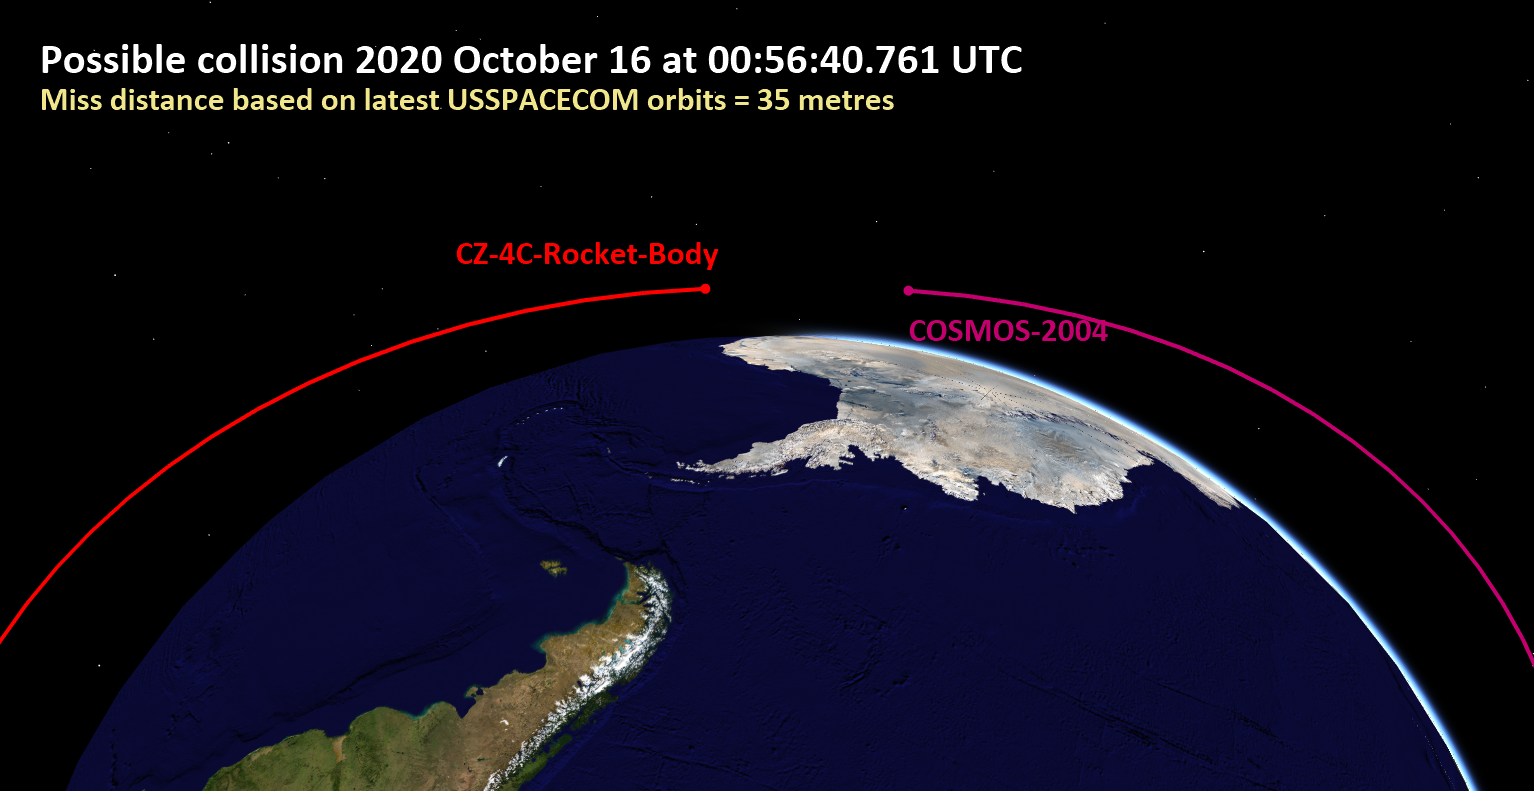 Image: Possible inter-satellite collision on Friday